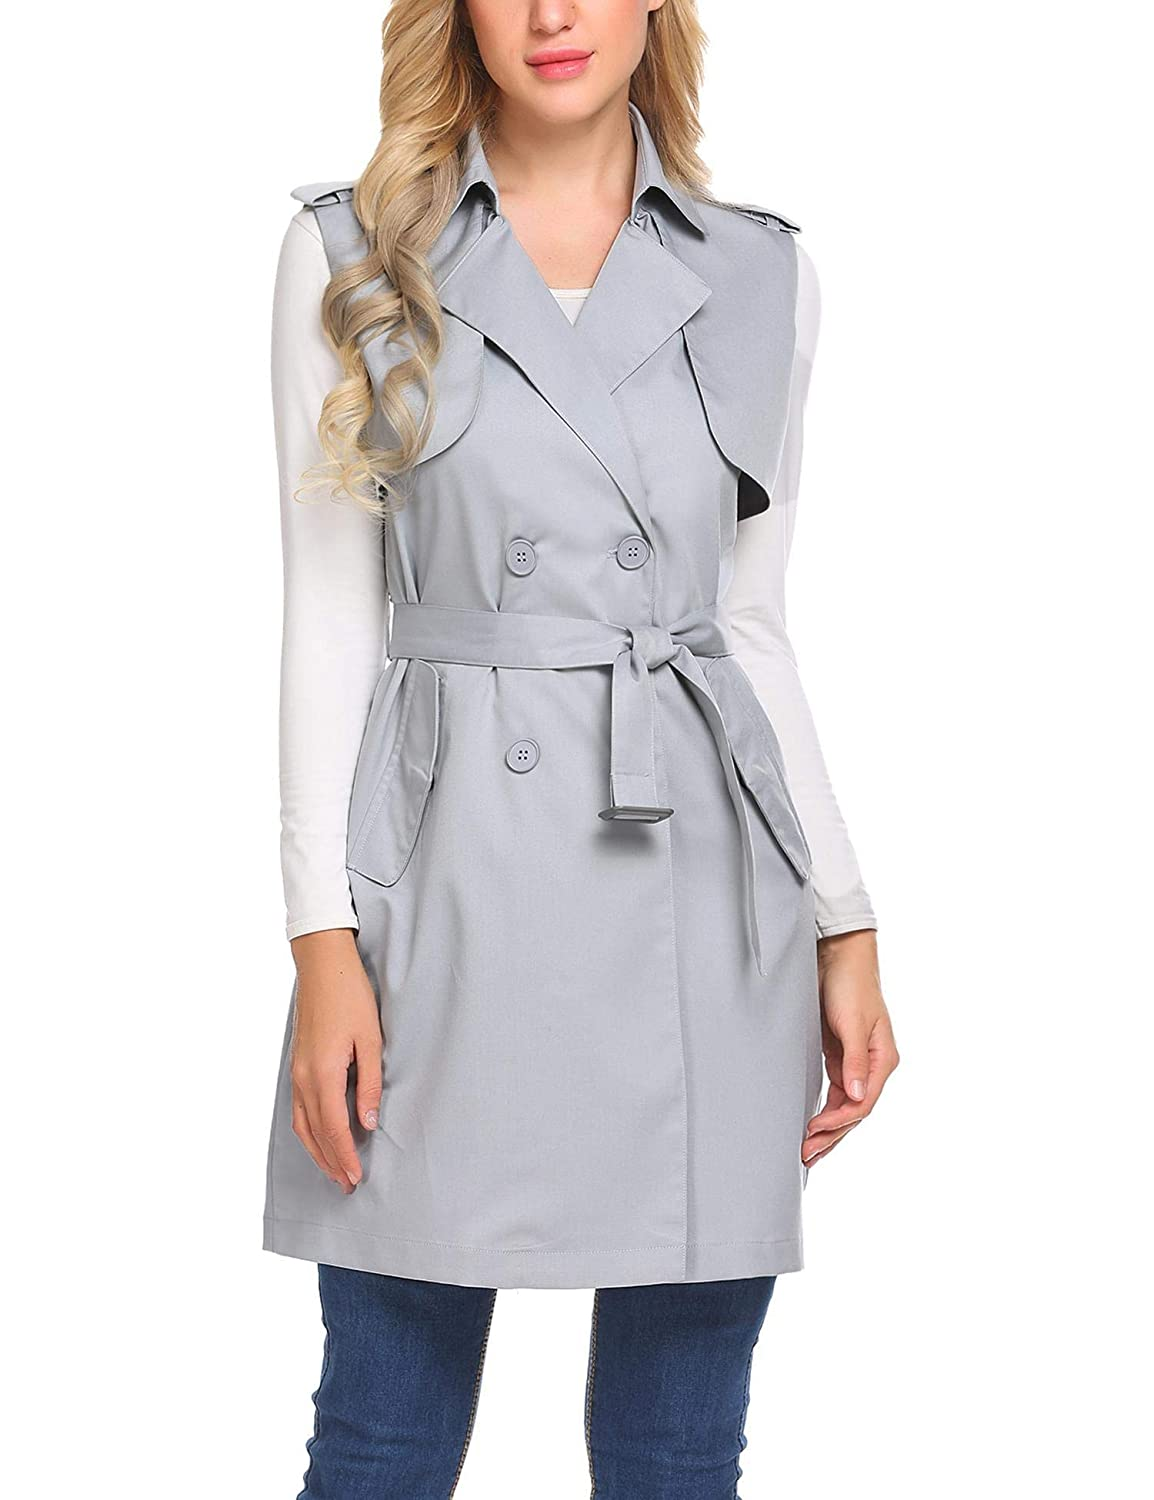 Mofavor Womens Long Sleeveless Trench Coat Double Breasted Vest Blazer Jacket with Belt S-XXL